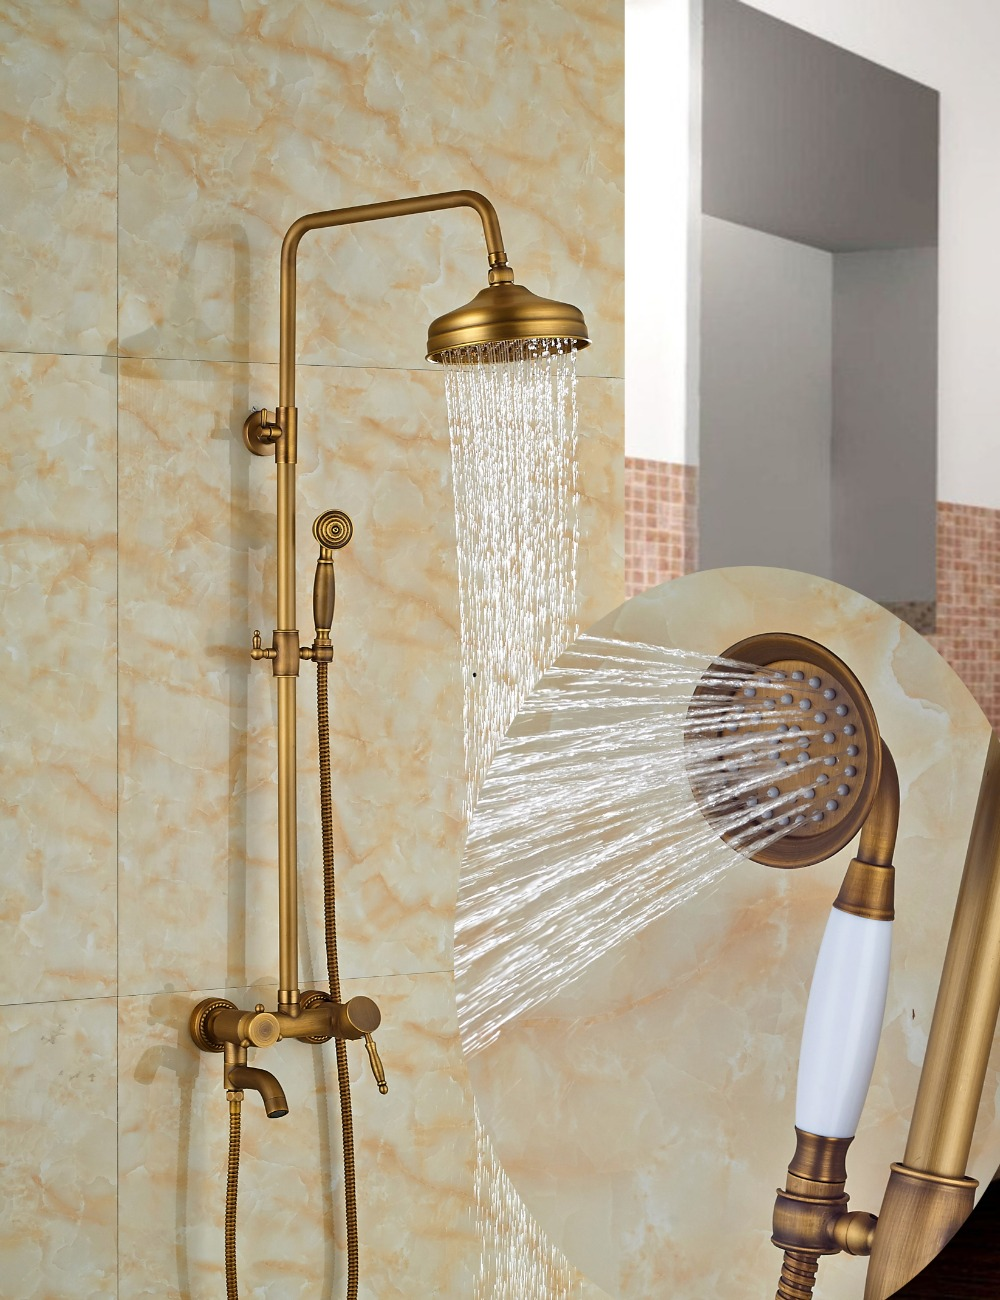 Wholesale And Retail Wall Mounted Round Rain Shower Faucet Set Tub Spout Mixer Tap Antique Brass Shower Sprayer